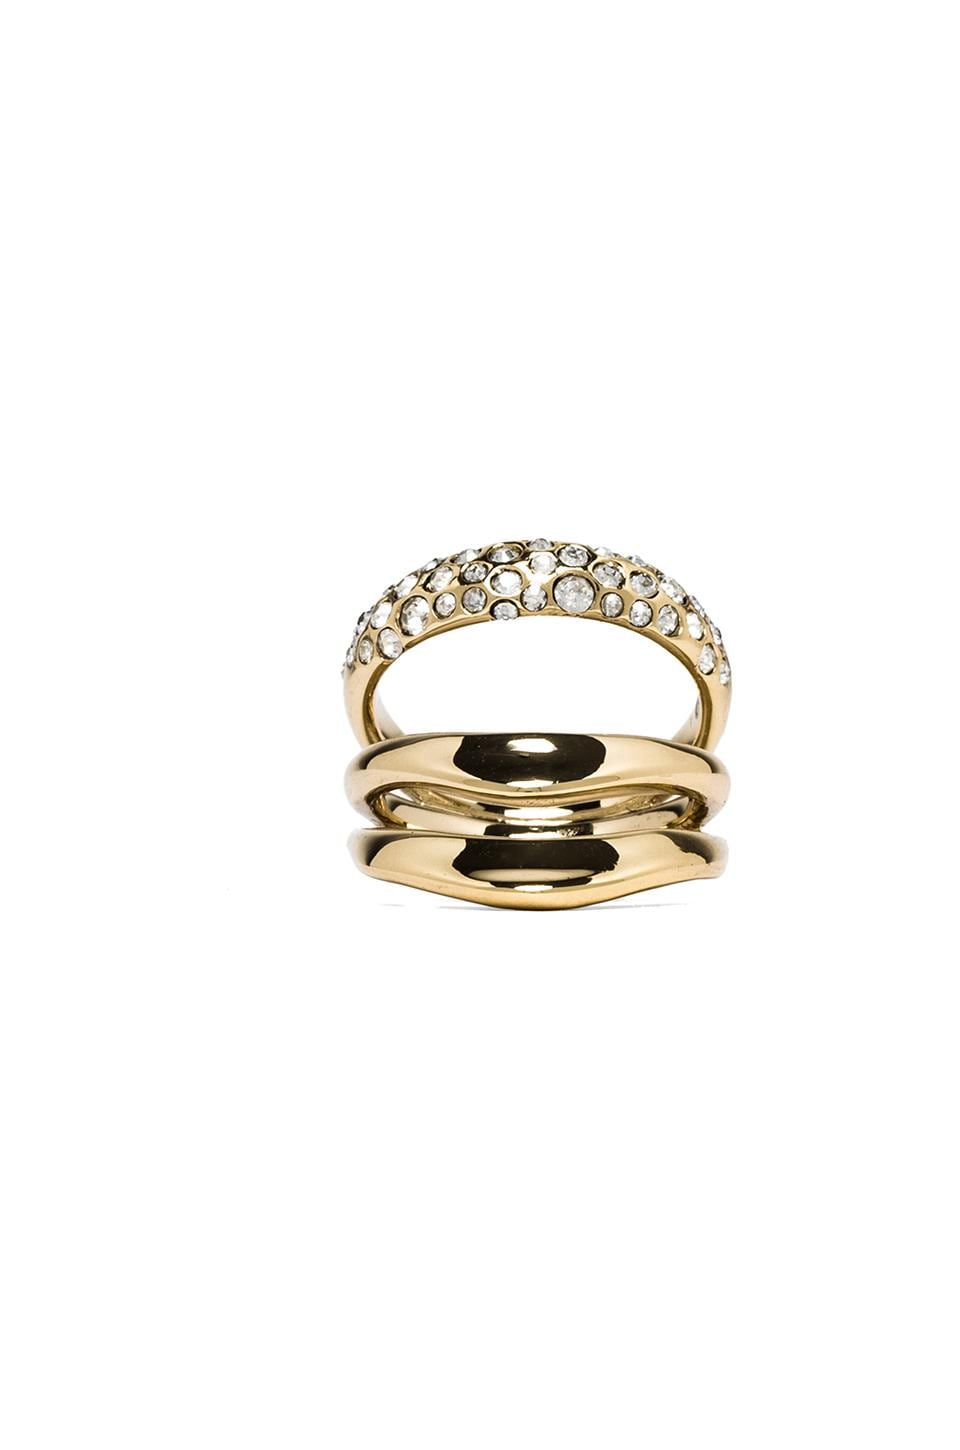 Alexis Bittar Liquid Crystal Encrusted Draping Ring Size in Gold